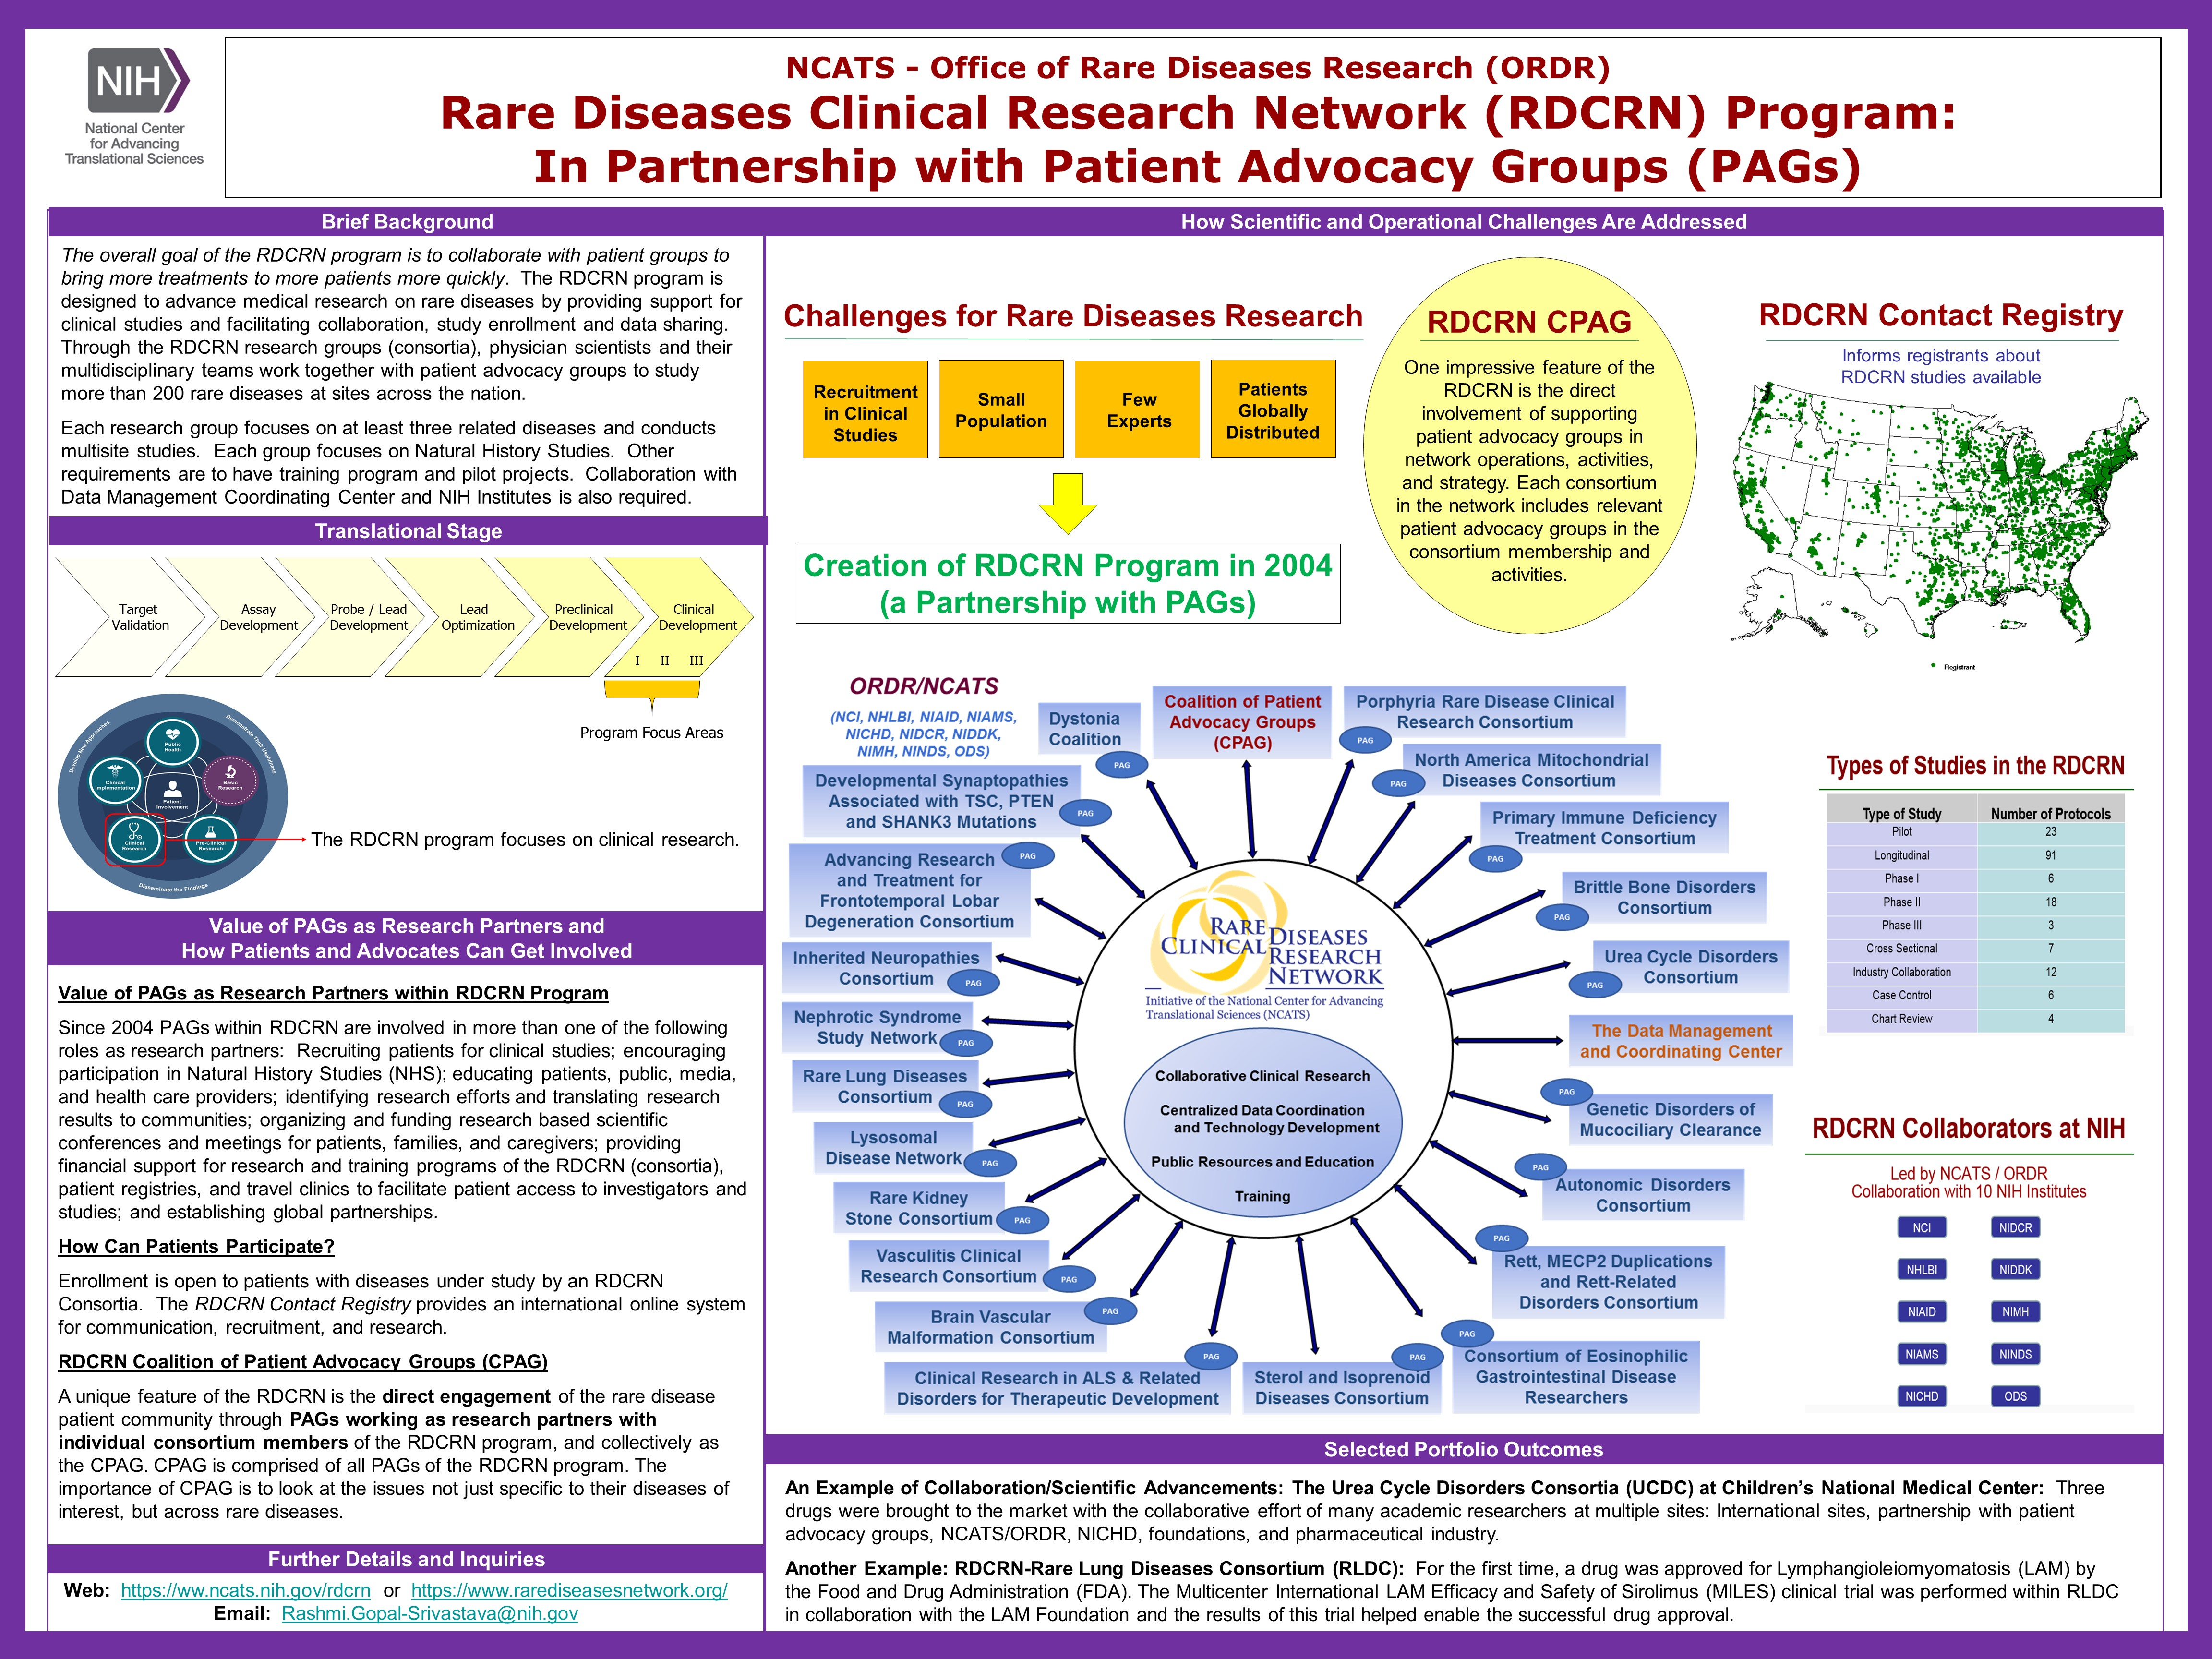 This NCATS Day poster provides background on NCATS' Rare Diseases Clinical Research Network, including goals, where it falls within the path of drug and therapeutics development and the translational science spectrum, how patients and advocates can get involved, and how NCATS addresses scientific and operational challenges.